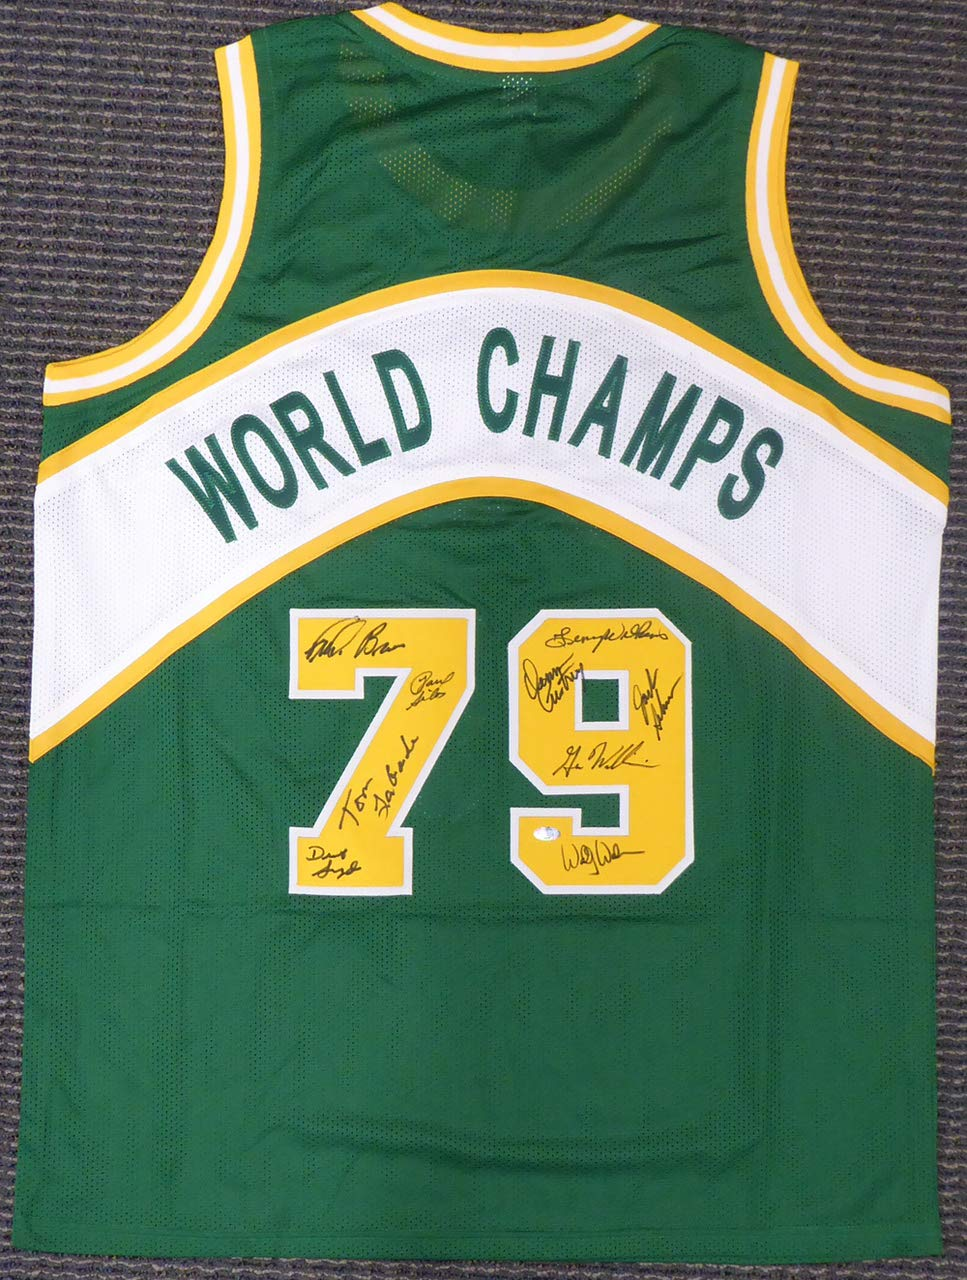 6492cd0a 1978-79 NBA Champions Seattle Supersonics Multi Signed Autographed Green  Jersey With 9 Signatures Including Fred Brown & Lenny Wilkens MCS Holo at  Amazon's ...